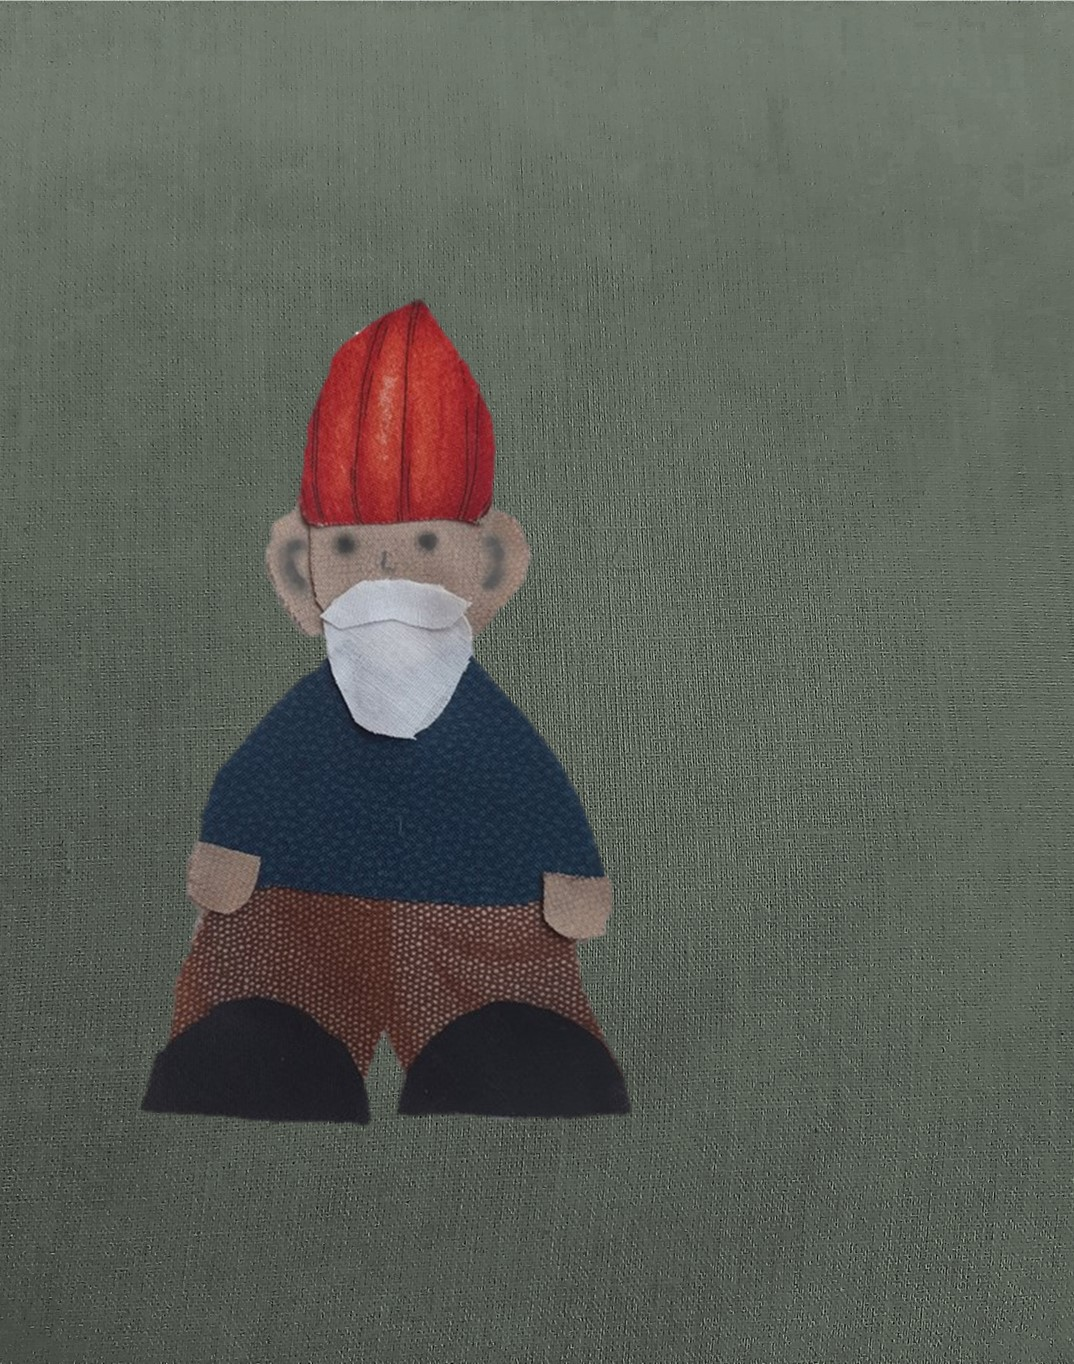 gnome with red hat and blue coat